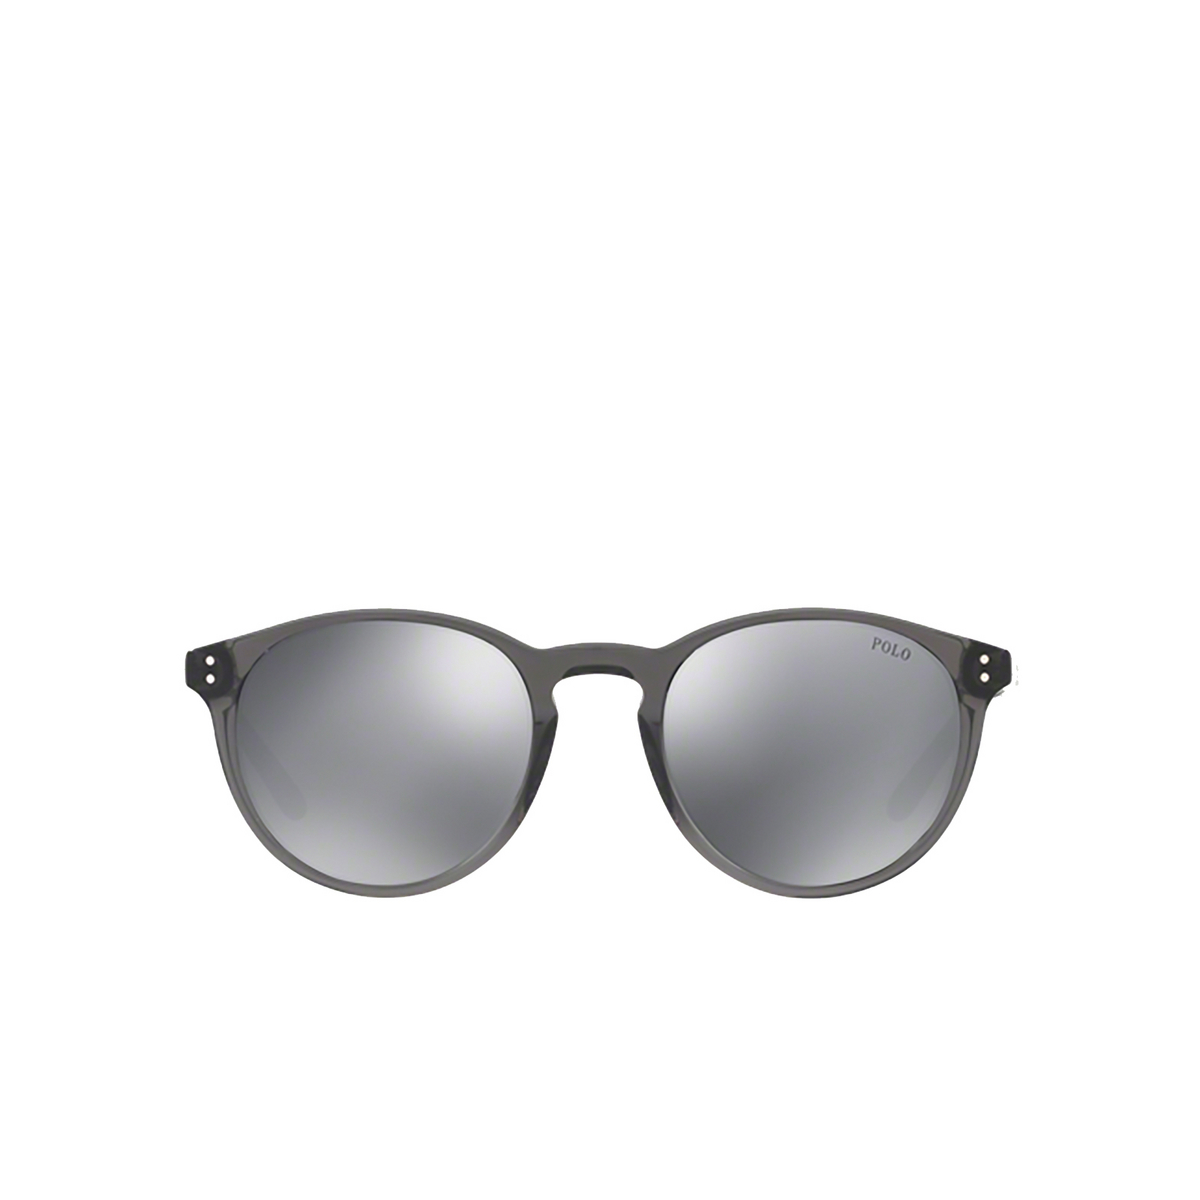 Polo Ralph Lauren® Round Sunglasses: PH4110 color Shiny Black Crystal 55366G - front view.